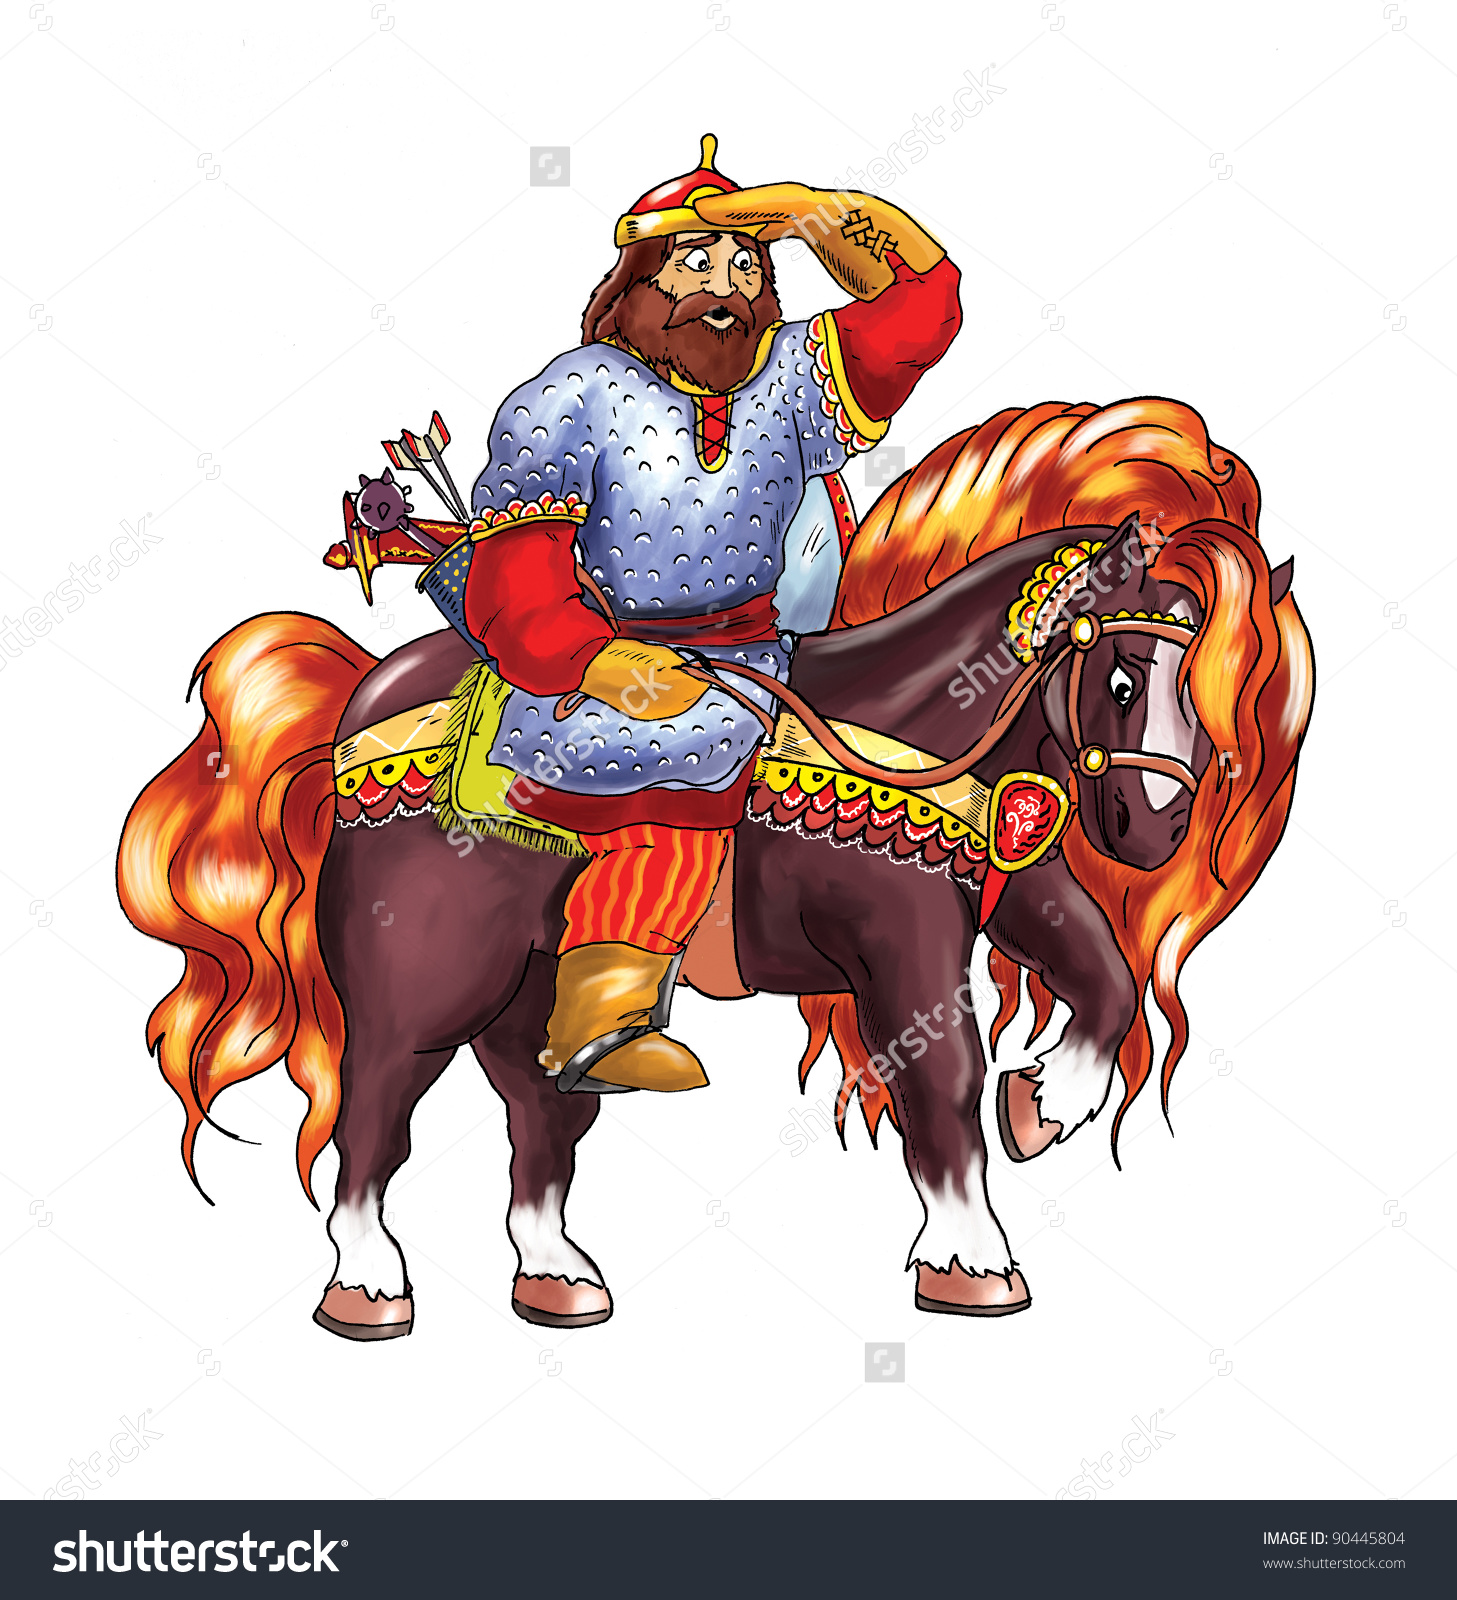 Russian Epic Hero Sitting On Horse Looking Forward And Surprised.